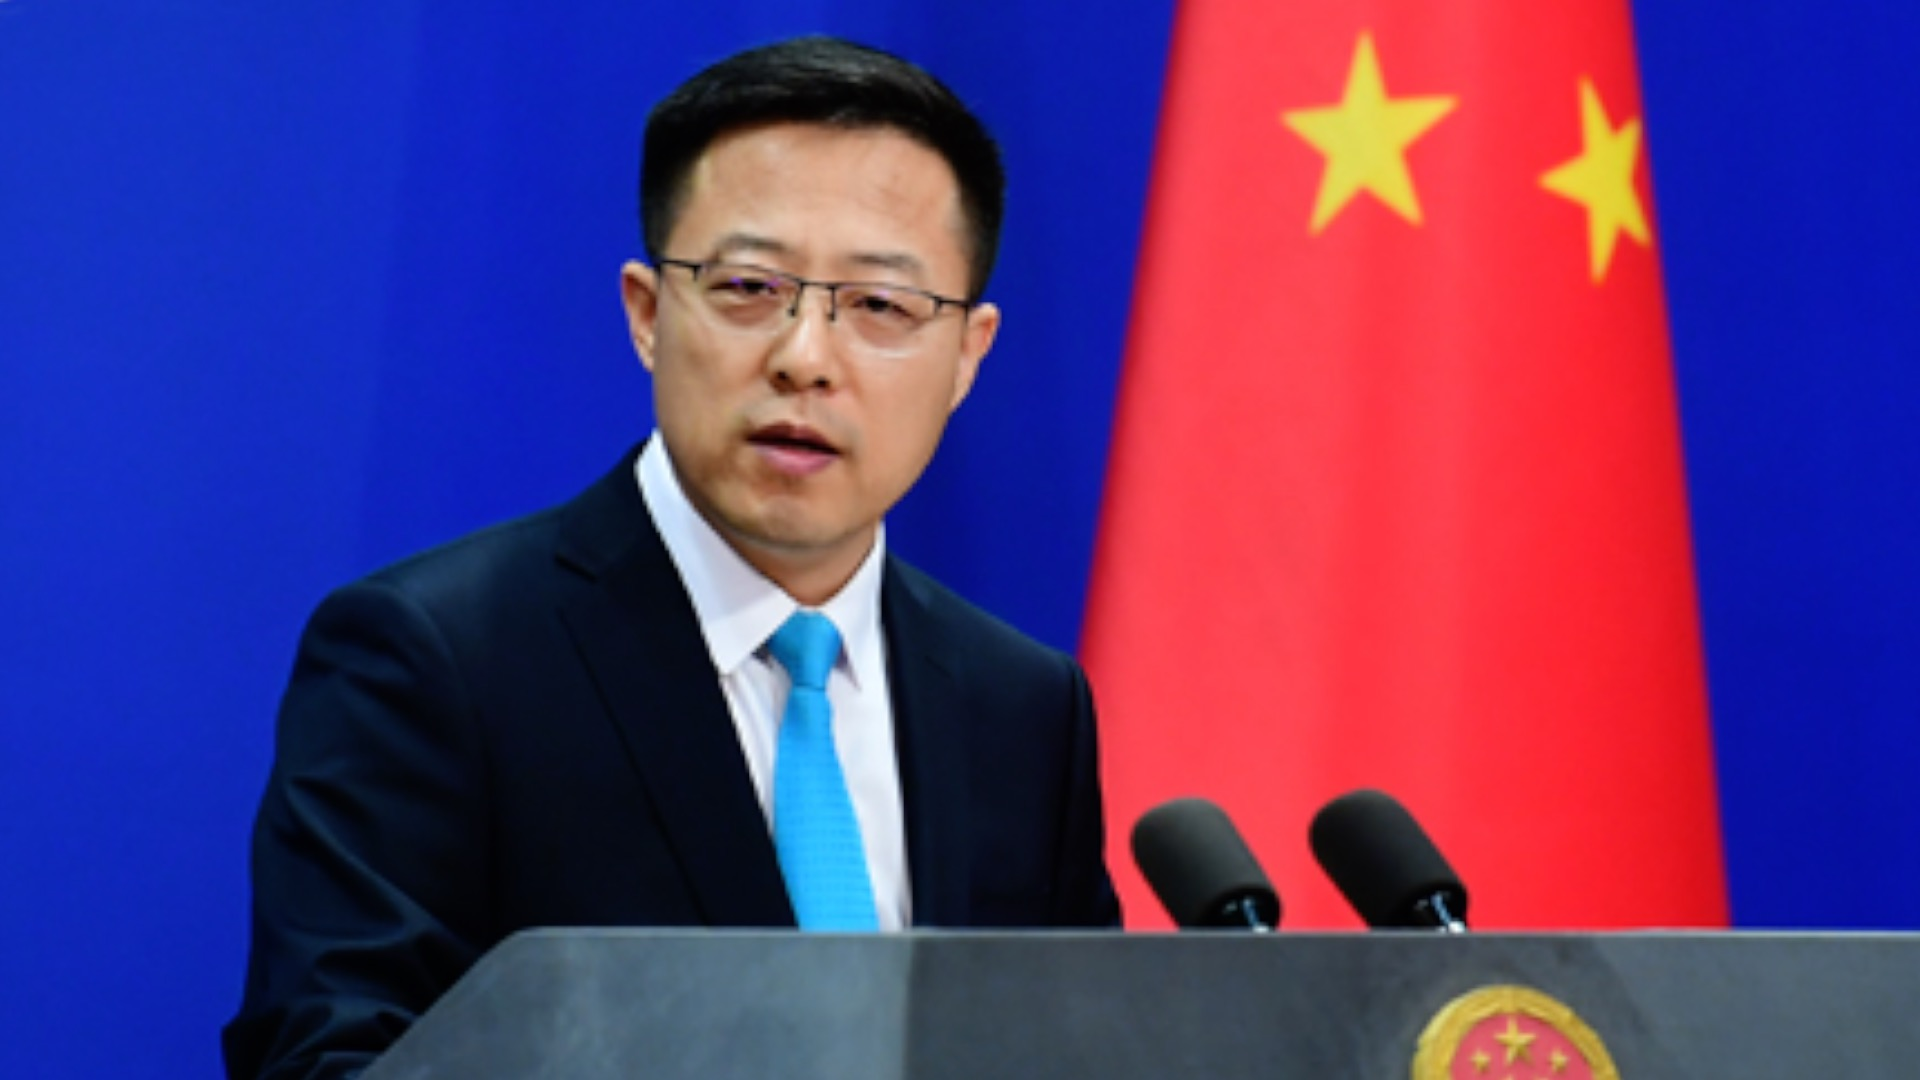 China Warned Canada not to damage relations over Uyghur genocide issue